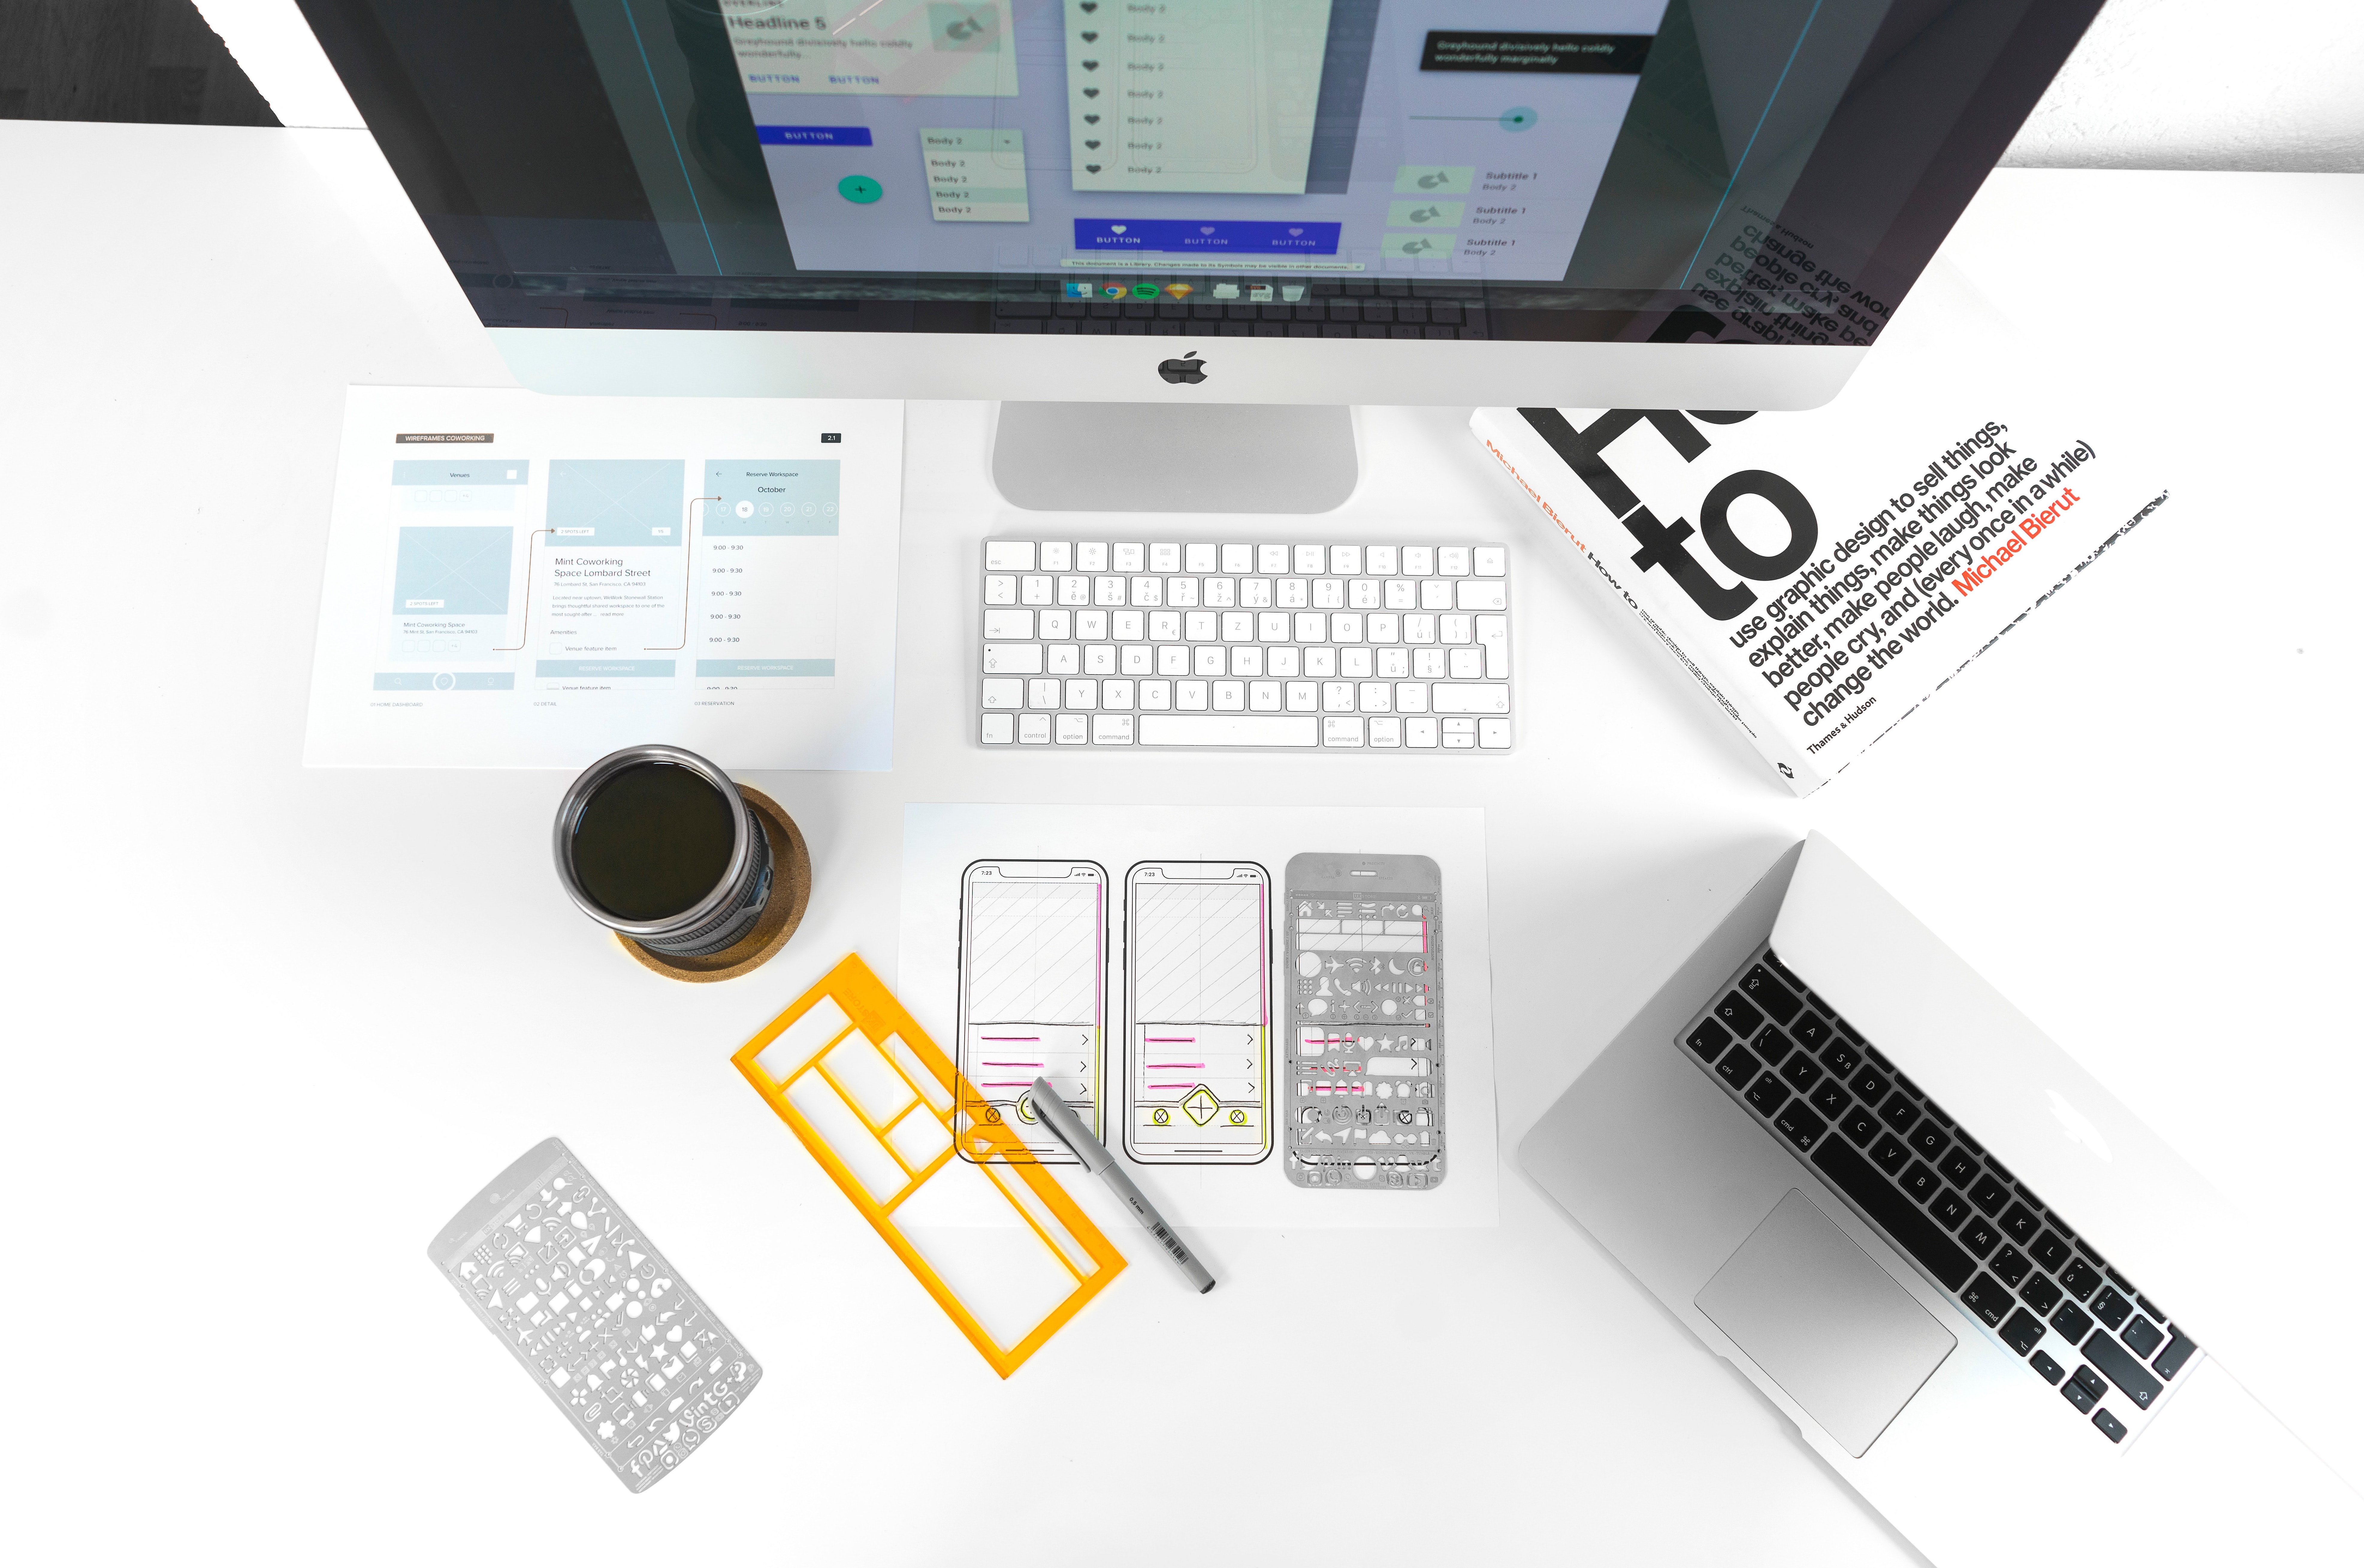 Aerial view of a desktop with a keyboard, coffee, laptop, graphic design book, and prototyping drawing templates for mobile phone